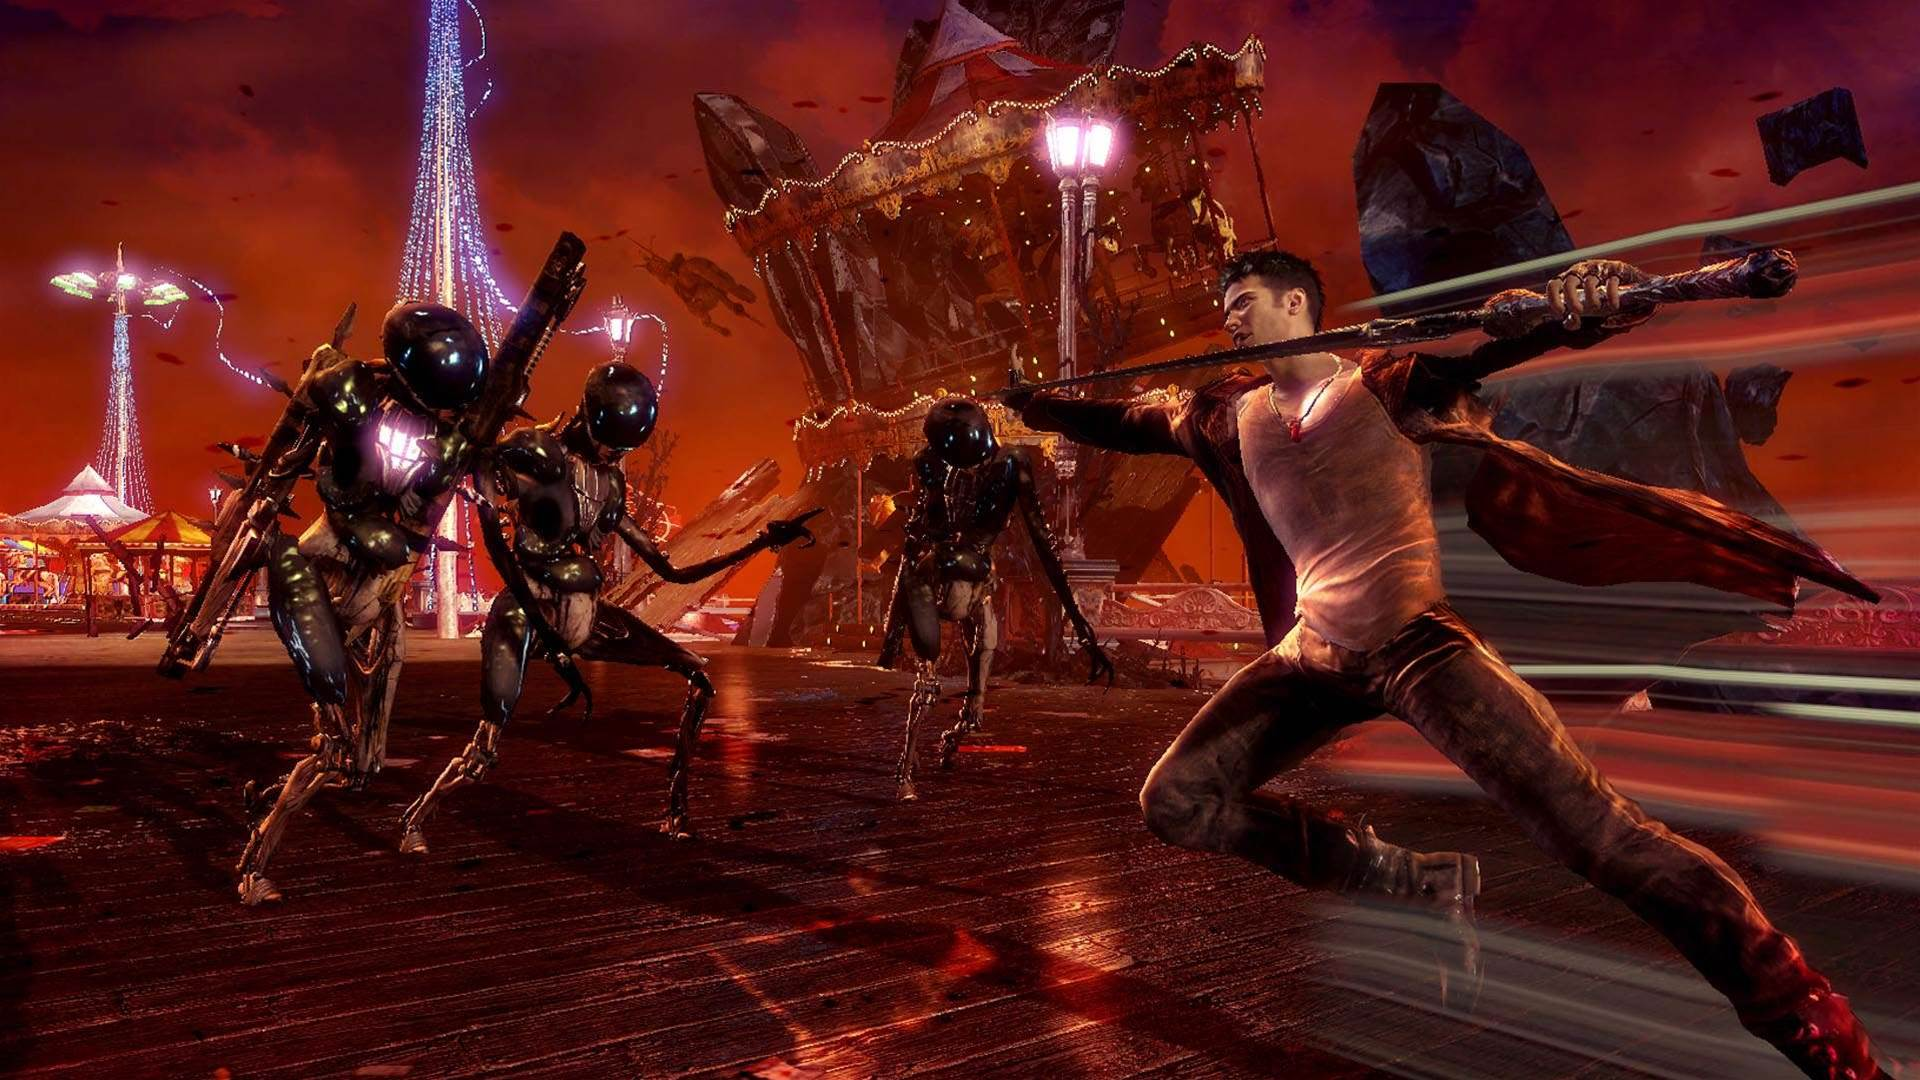 Review: DMC: Devil May Cry